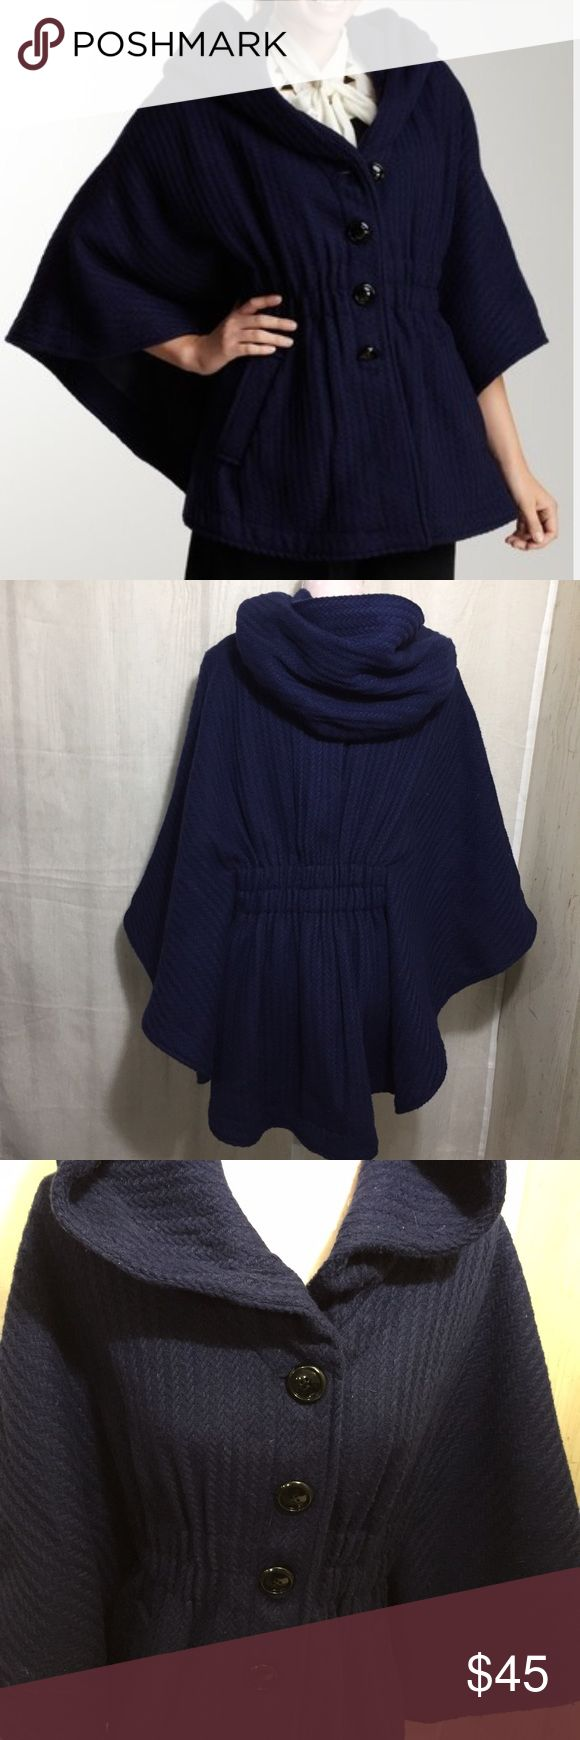 """Steve Madden Hood If I Could Cape in Navy Steve Madden 70s Mid-length Sleeveless Hooded Cape.  Oversize hood and covered pockets Elasticized waist and adjustable on the inside with snap tabs  Shell 60% polyester 29% acrylic 5% wool 3% cotton 3% nylon Lining 100% polyester Fabric does not stretch Dry clean  Length 28.5"""" Sleeve length 20""""  Note will have to dry clean when you receive, which will be reflected in final price.  Photo from www.hautelook.com Steve Madden Jackets & Coats Capes"""